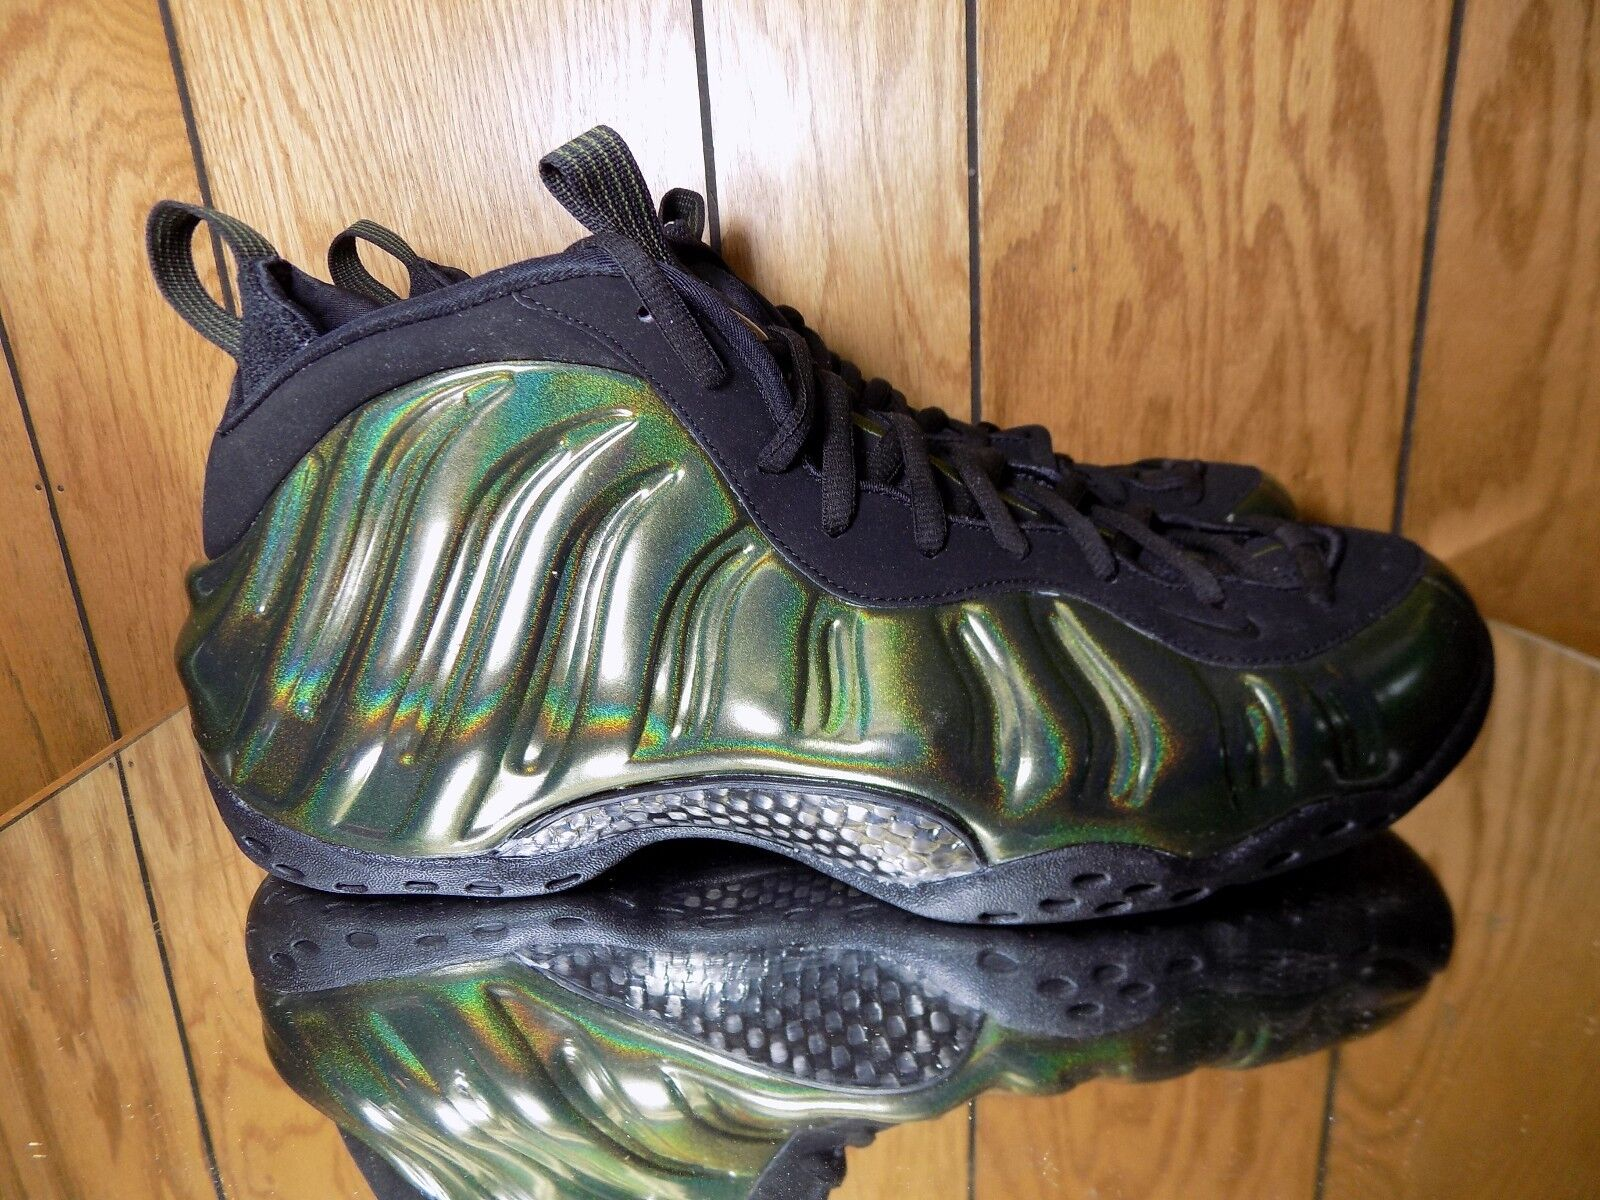 Nike Air Foamposite One Legion Green Black 314996 301 Size 14